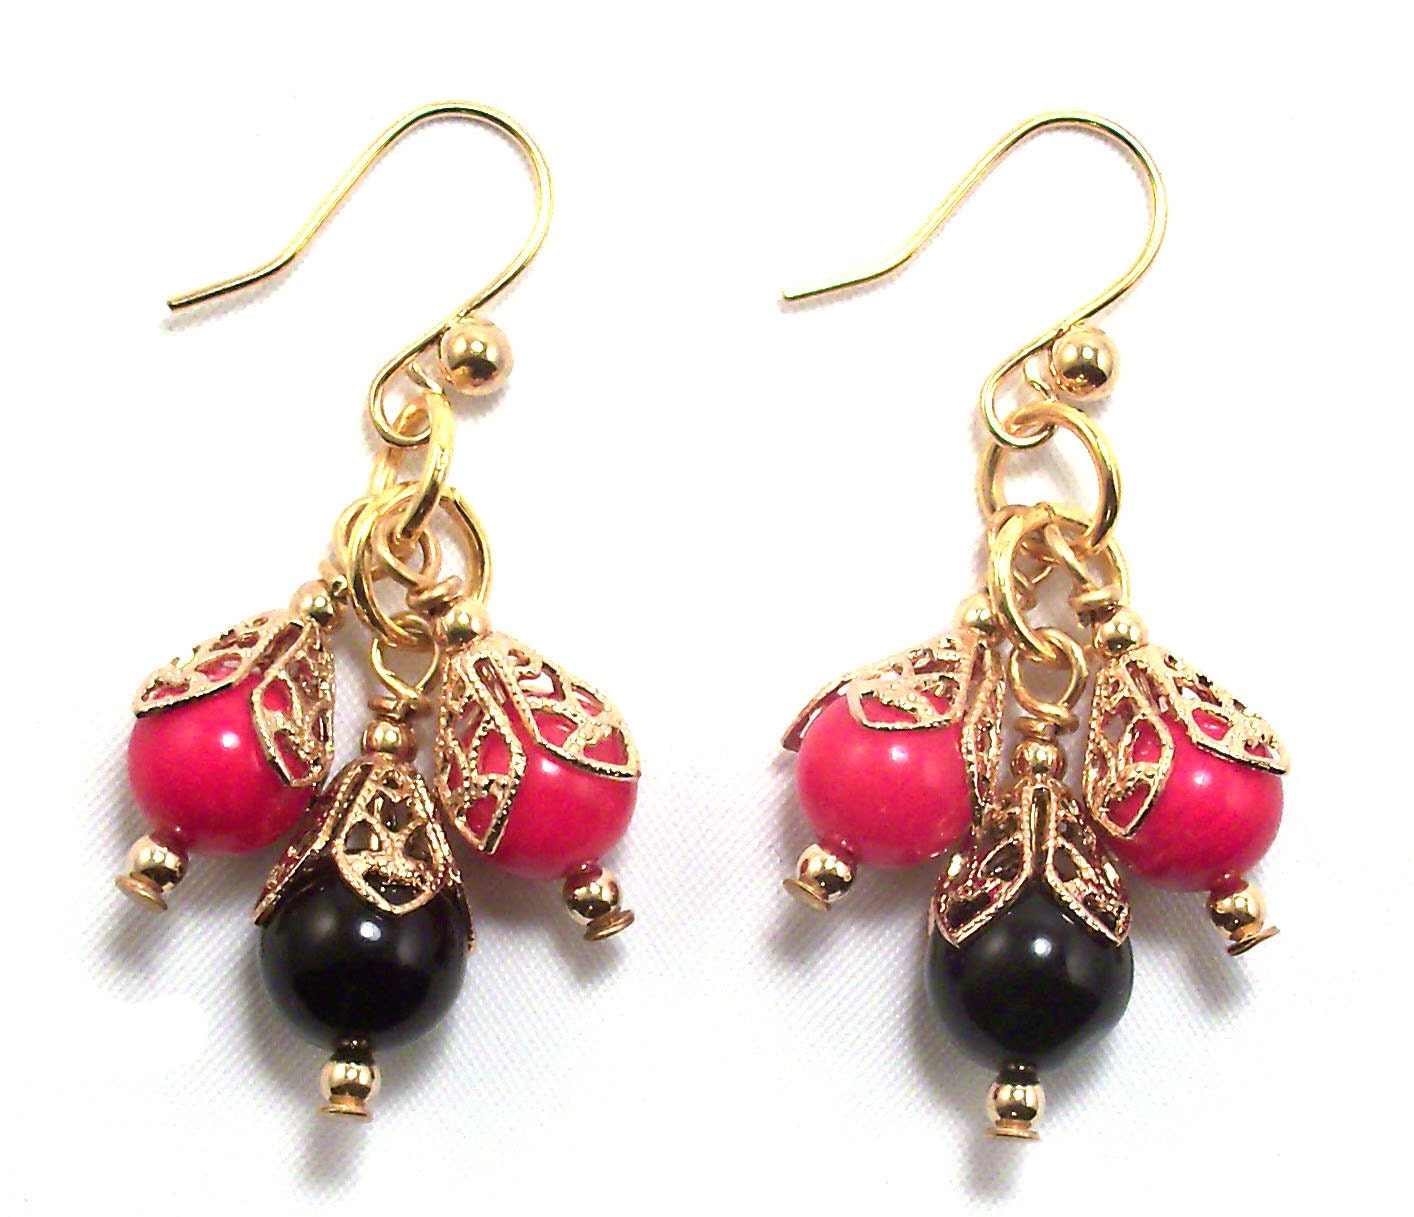 Red Coral Chandelier With 3 Lights: Red Coral & Black Obsidian Chandelier Earrings With Gold